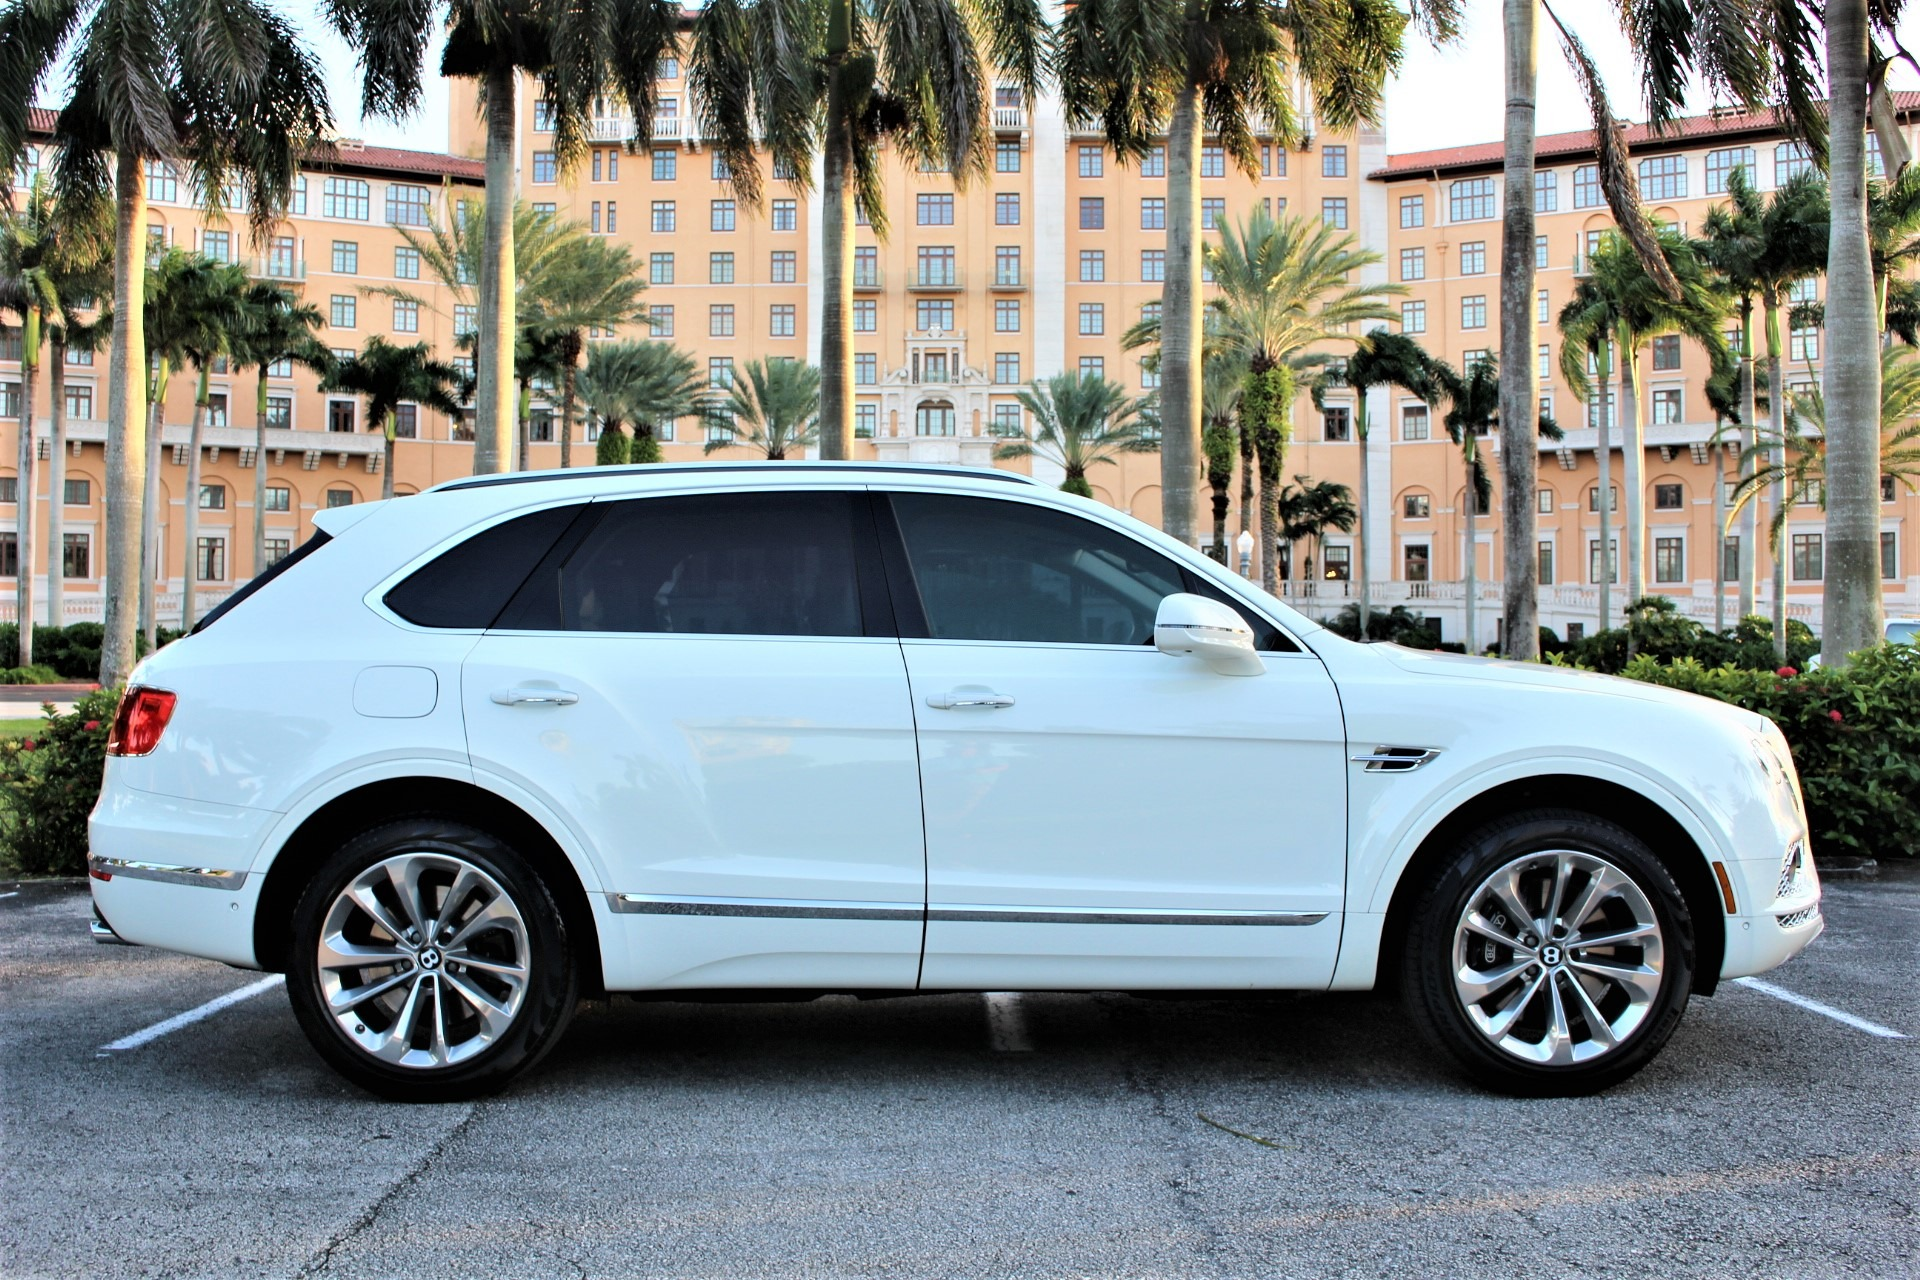 Used 2017 Bentley Bentayga W12 for sale Sold at The Gables Sports Cars in Miami FL 33146 1